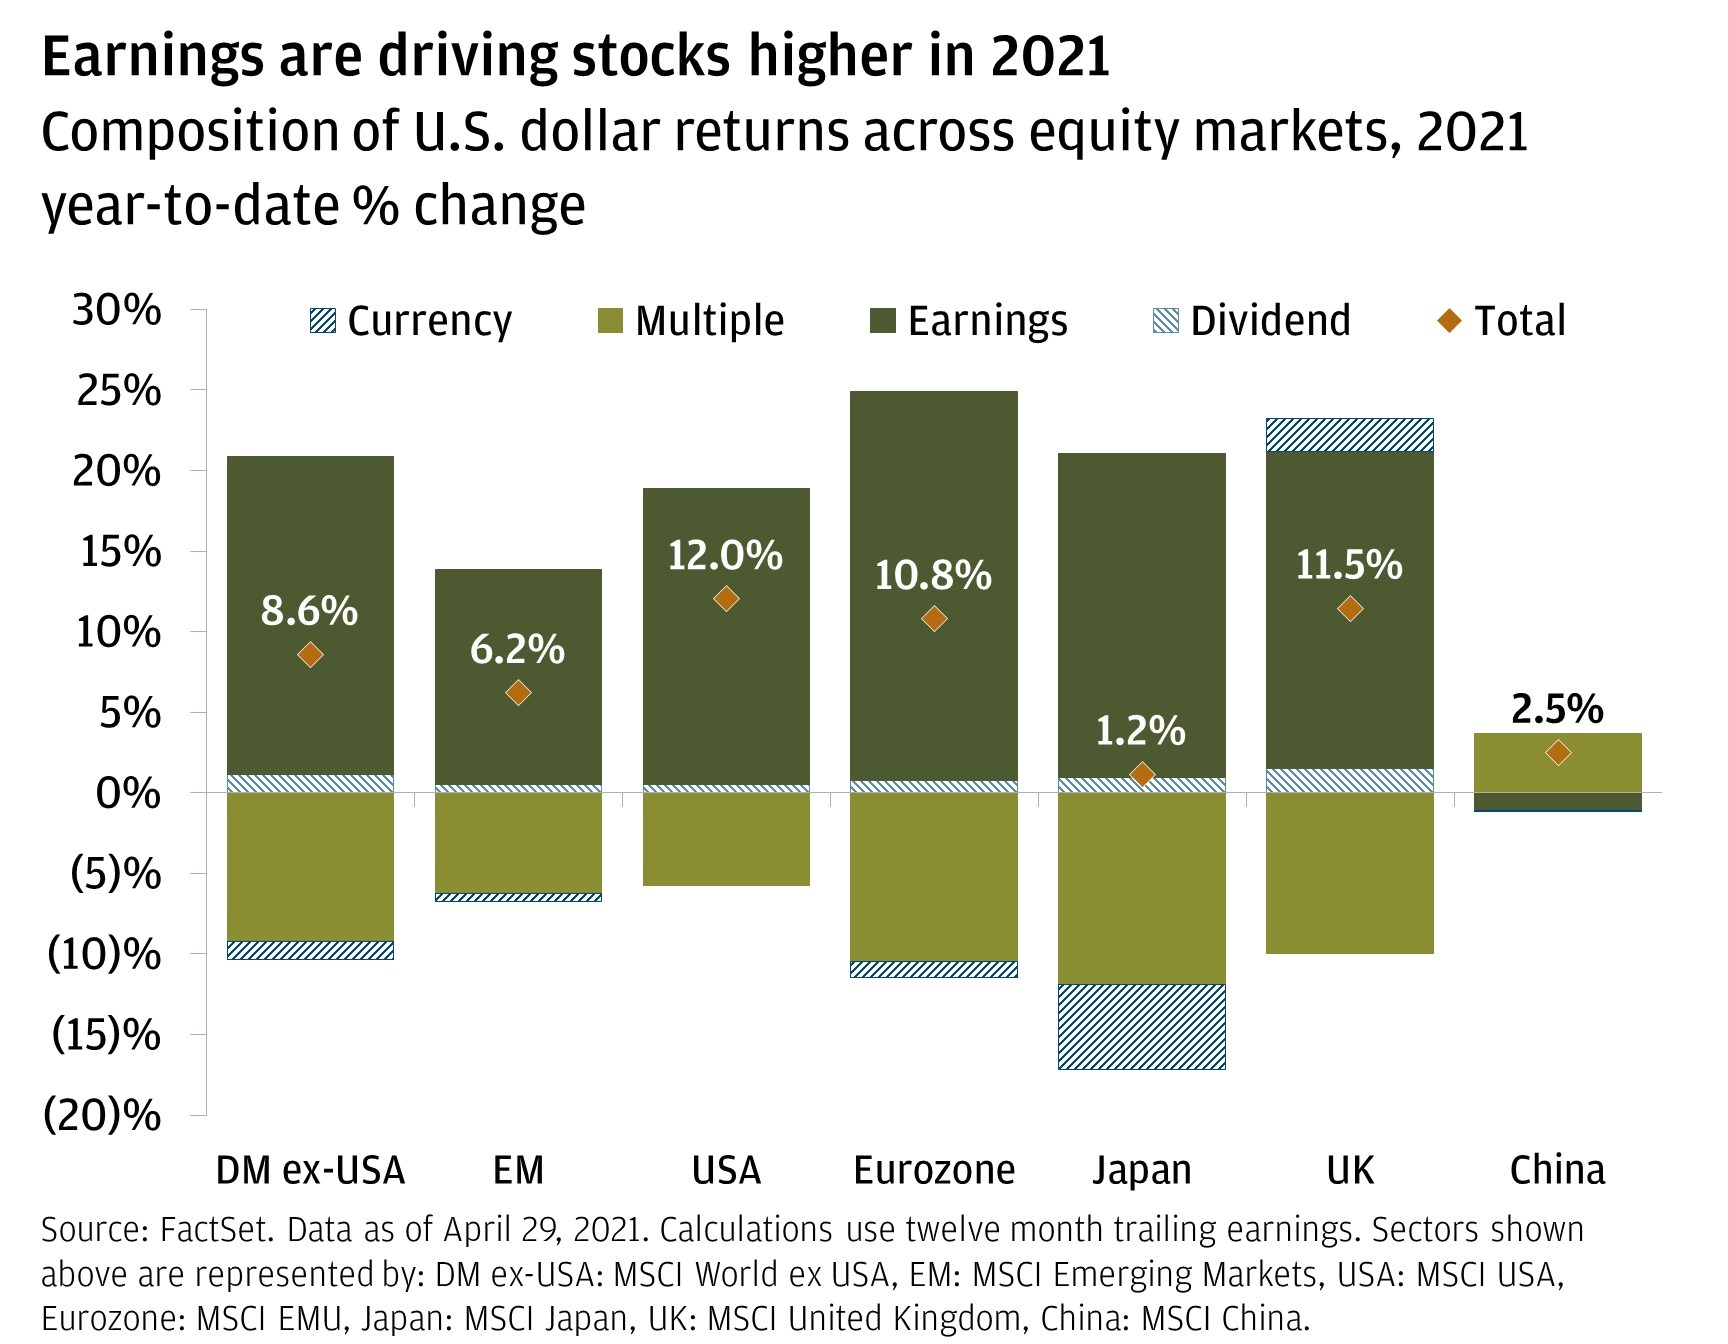 Chart 5: Earnings are driving stocks higher in 2021.